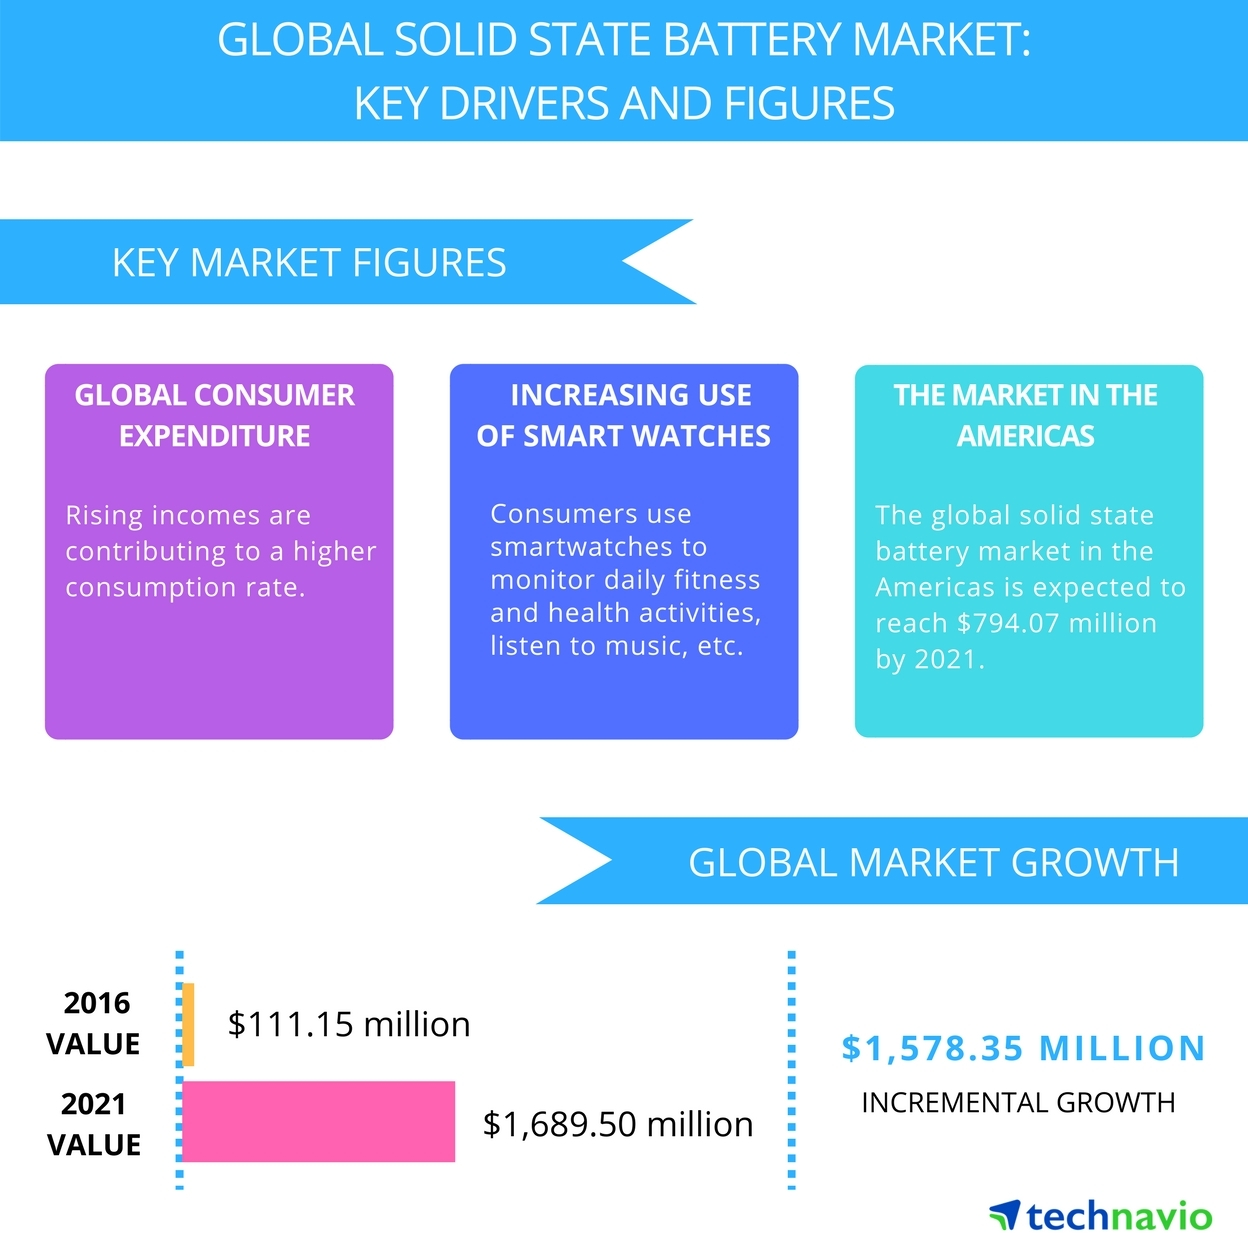 Intellasia East Asia News - Global Solid State Battery Market